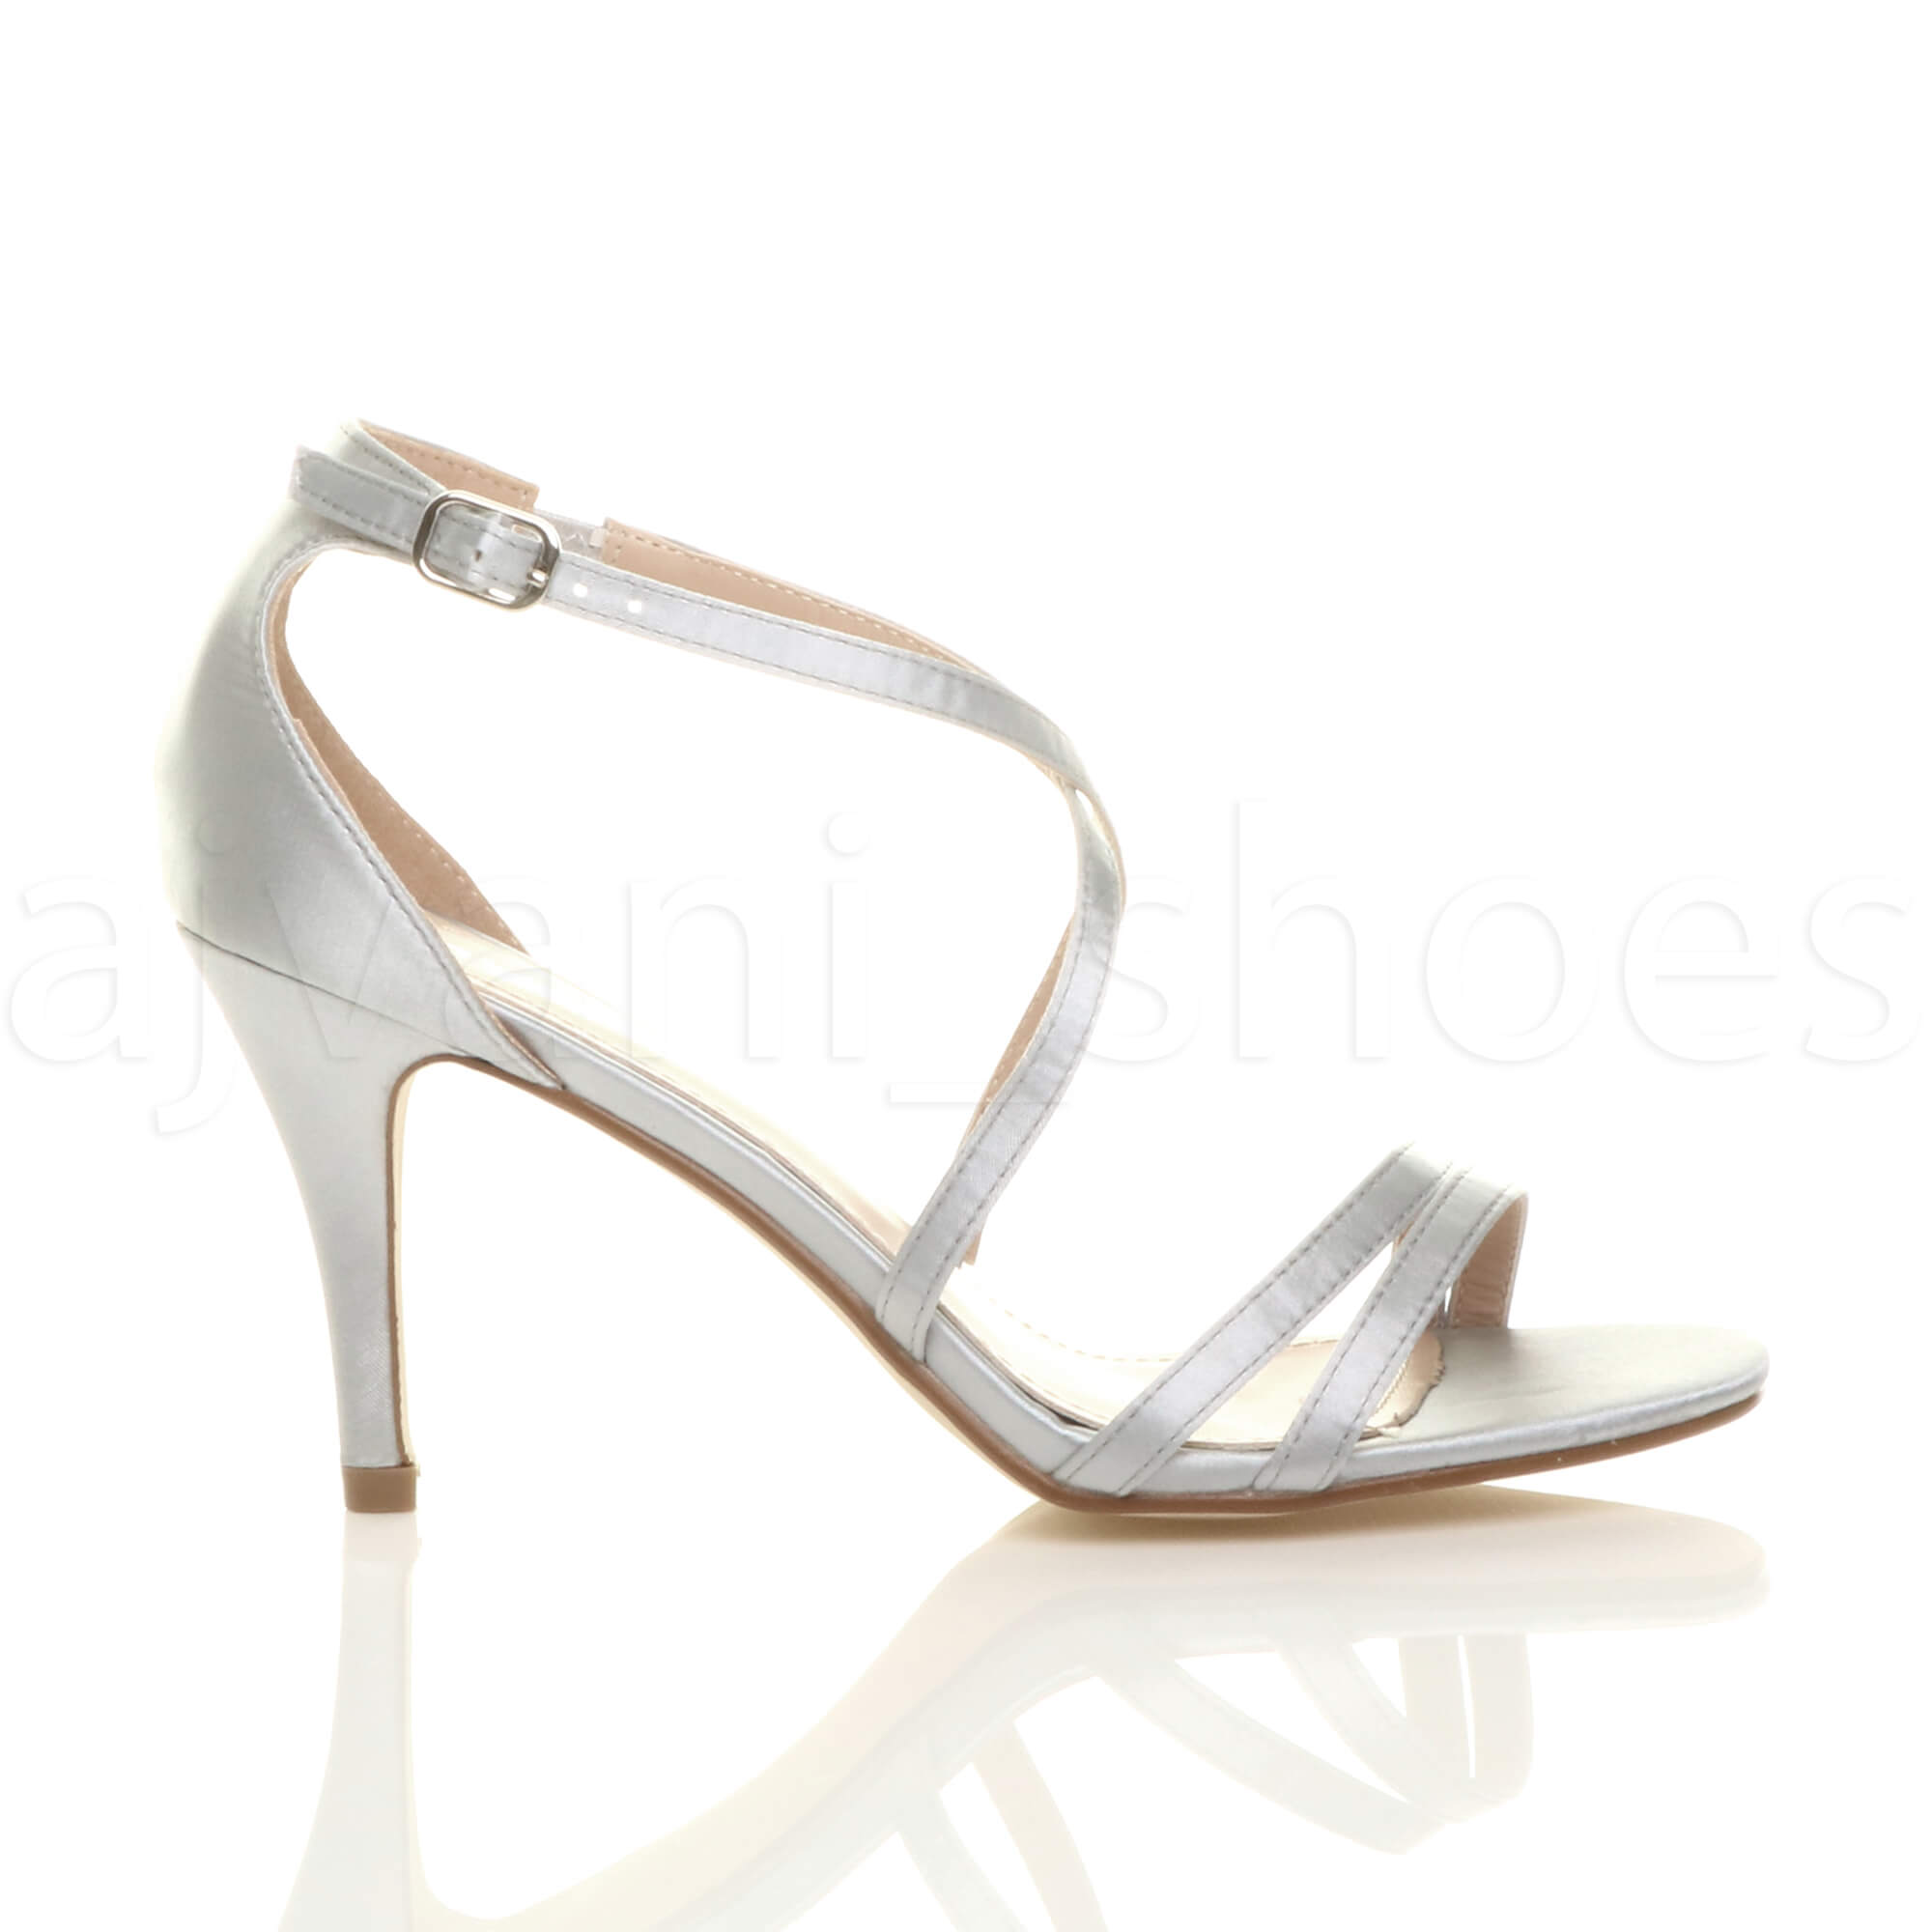 WOMENS-LADIES-MID-HIGH-HEEL-STRAPPY-CROSSOVER-WEDDING-PROM-SANDALS-SHOES-SIZE thumbnail 157